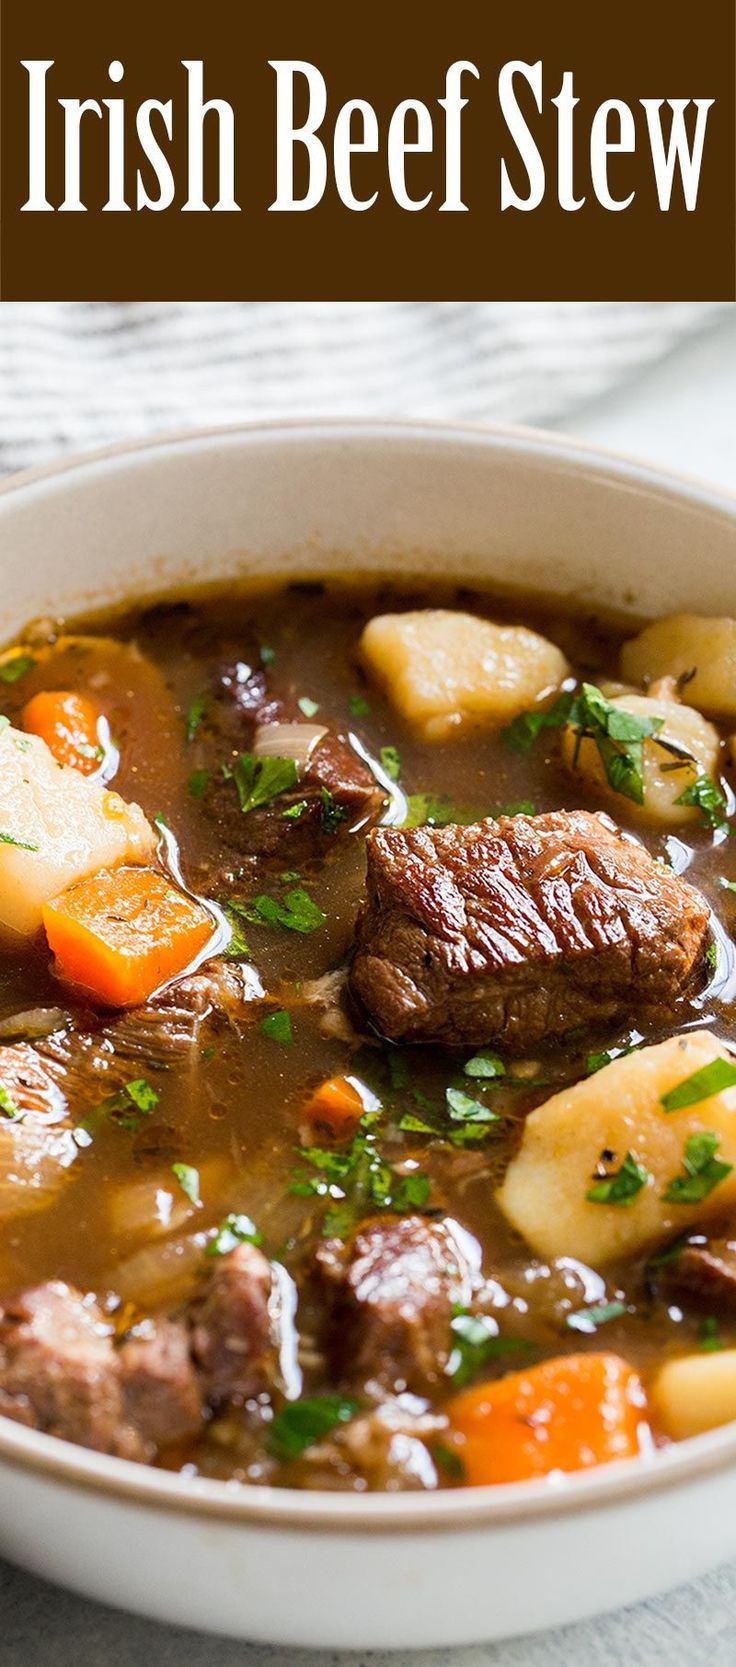 BEST Irish Beef Stew! Made with beef, garlic, stock, Irish Guinness stout, red wine, potatoes, carrots, and onions. A hearty stew perfect for celebrating St. Patrick's Day! On SimplyRecipes.com